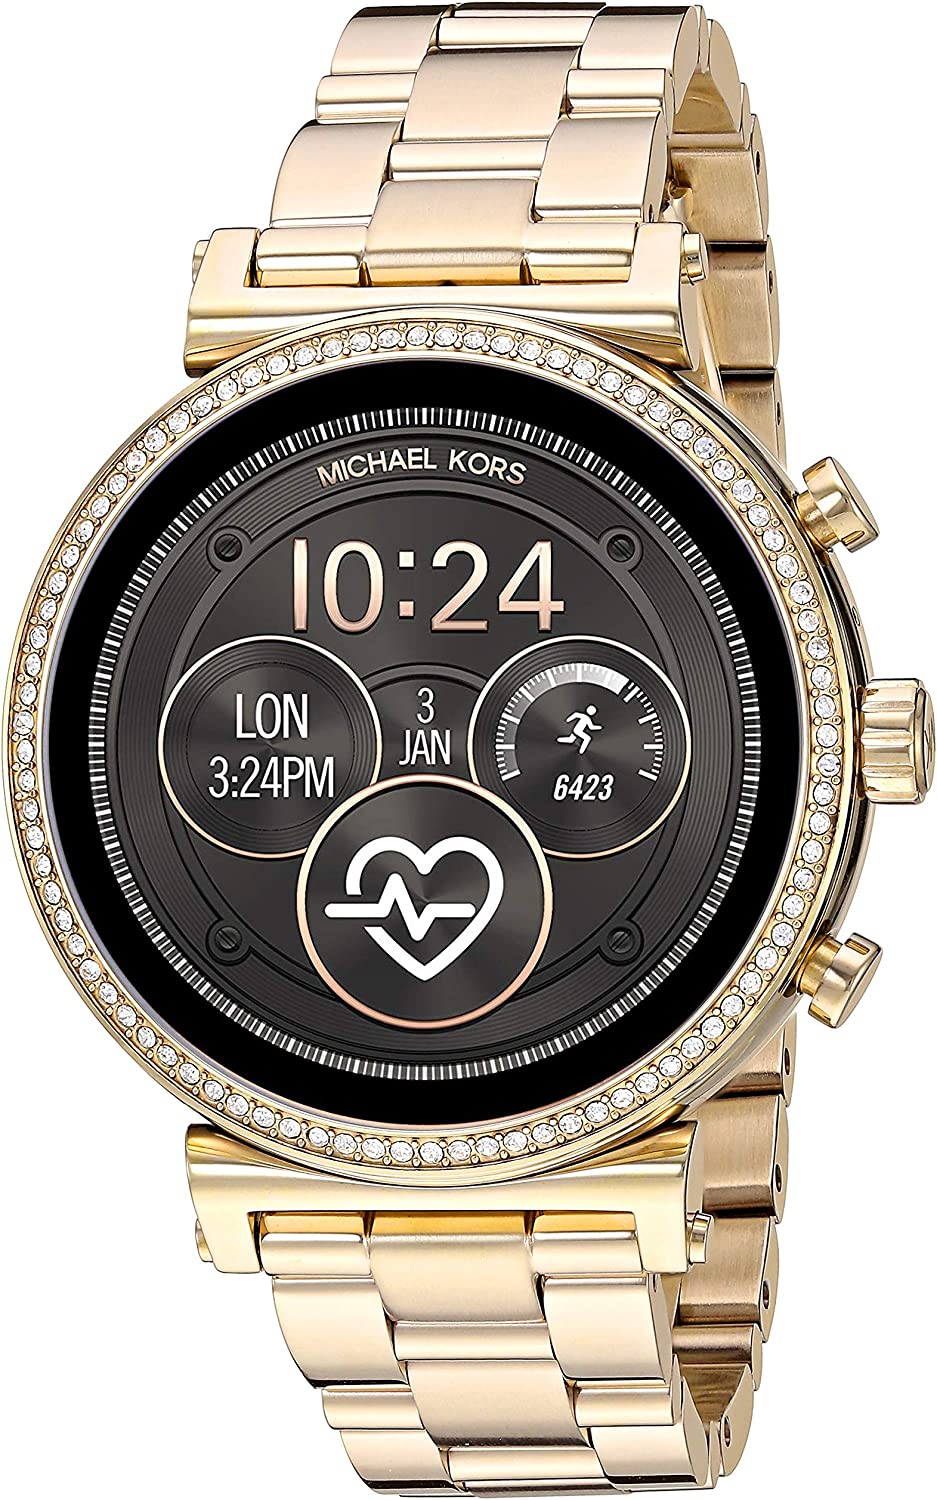 Michael Kors Access Sofie Heart Rate Smartwatch Powered with Wear OS by Google with Heart Rate, GPS, NFC, and Smartphone Notifications